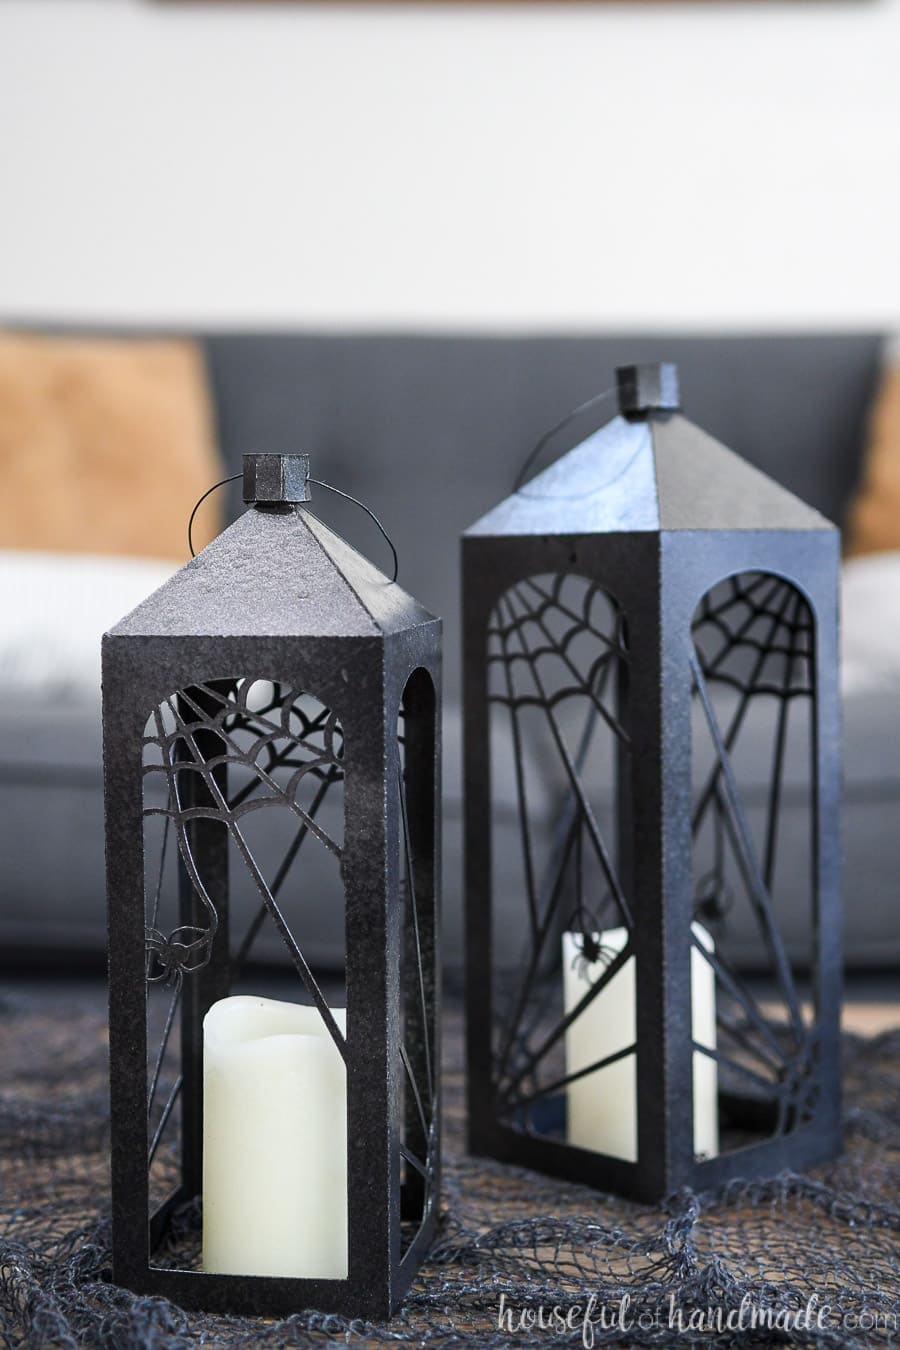 Close up view of the large and medium paper Halloween lanterns.